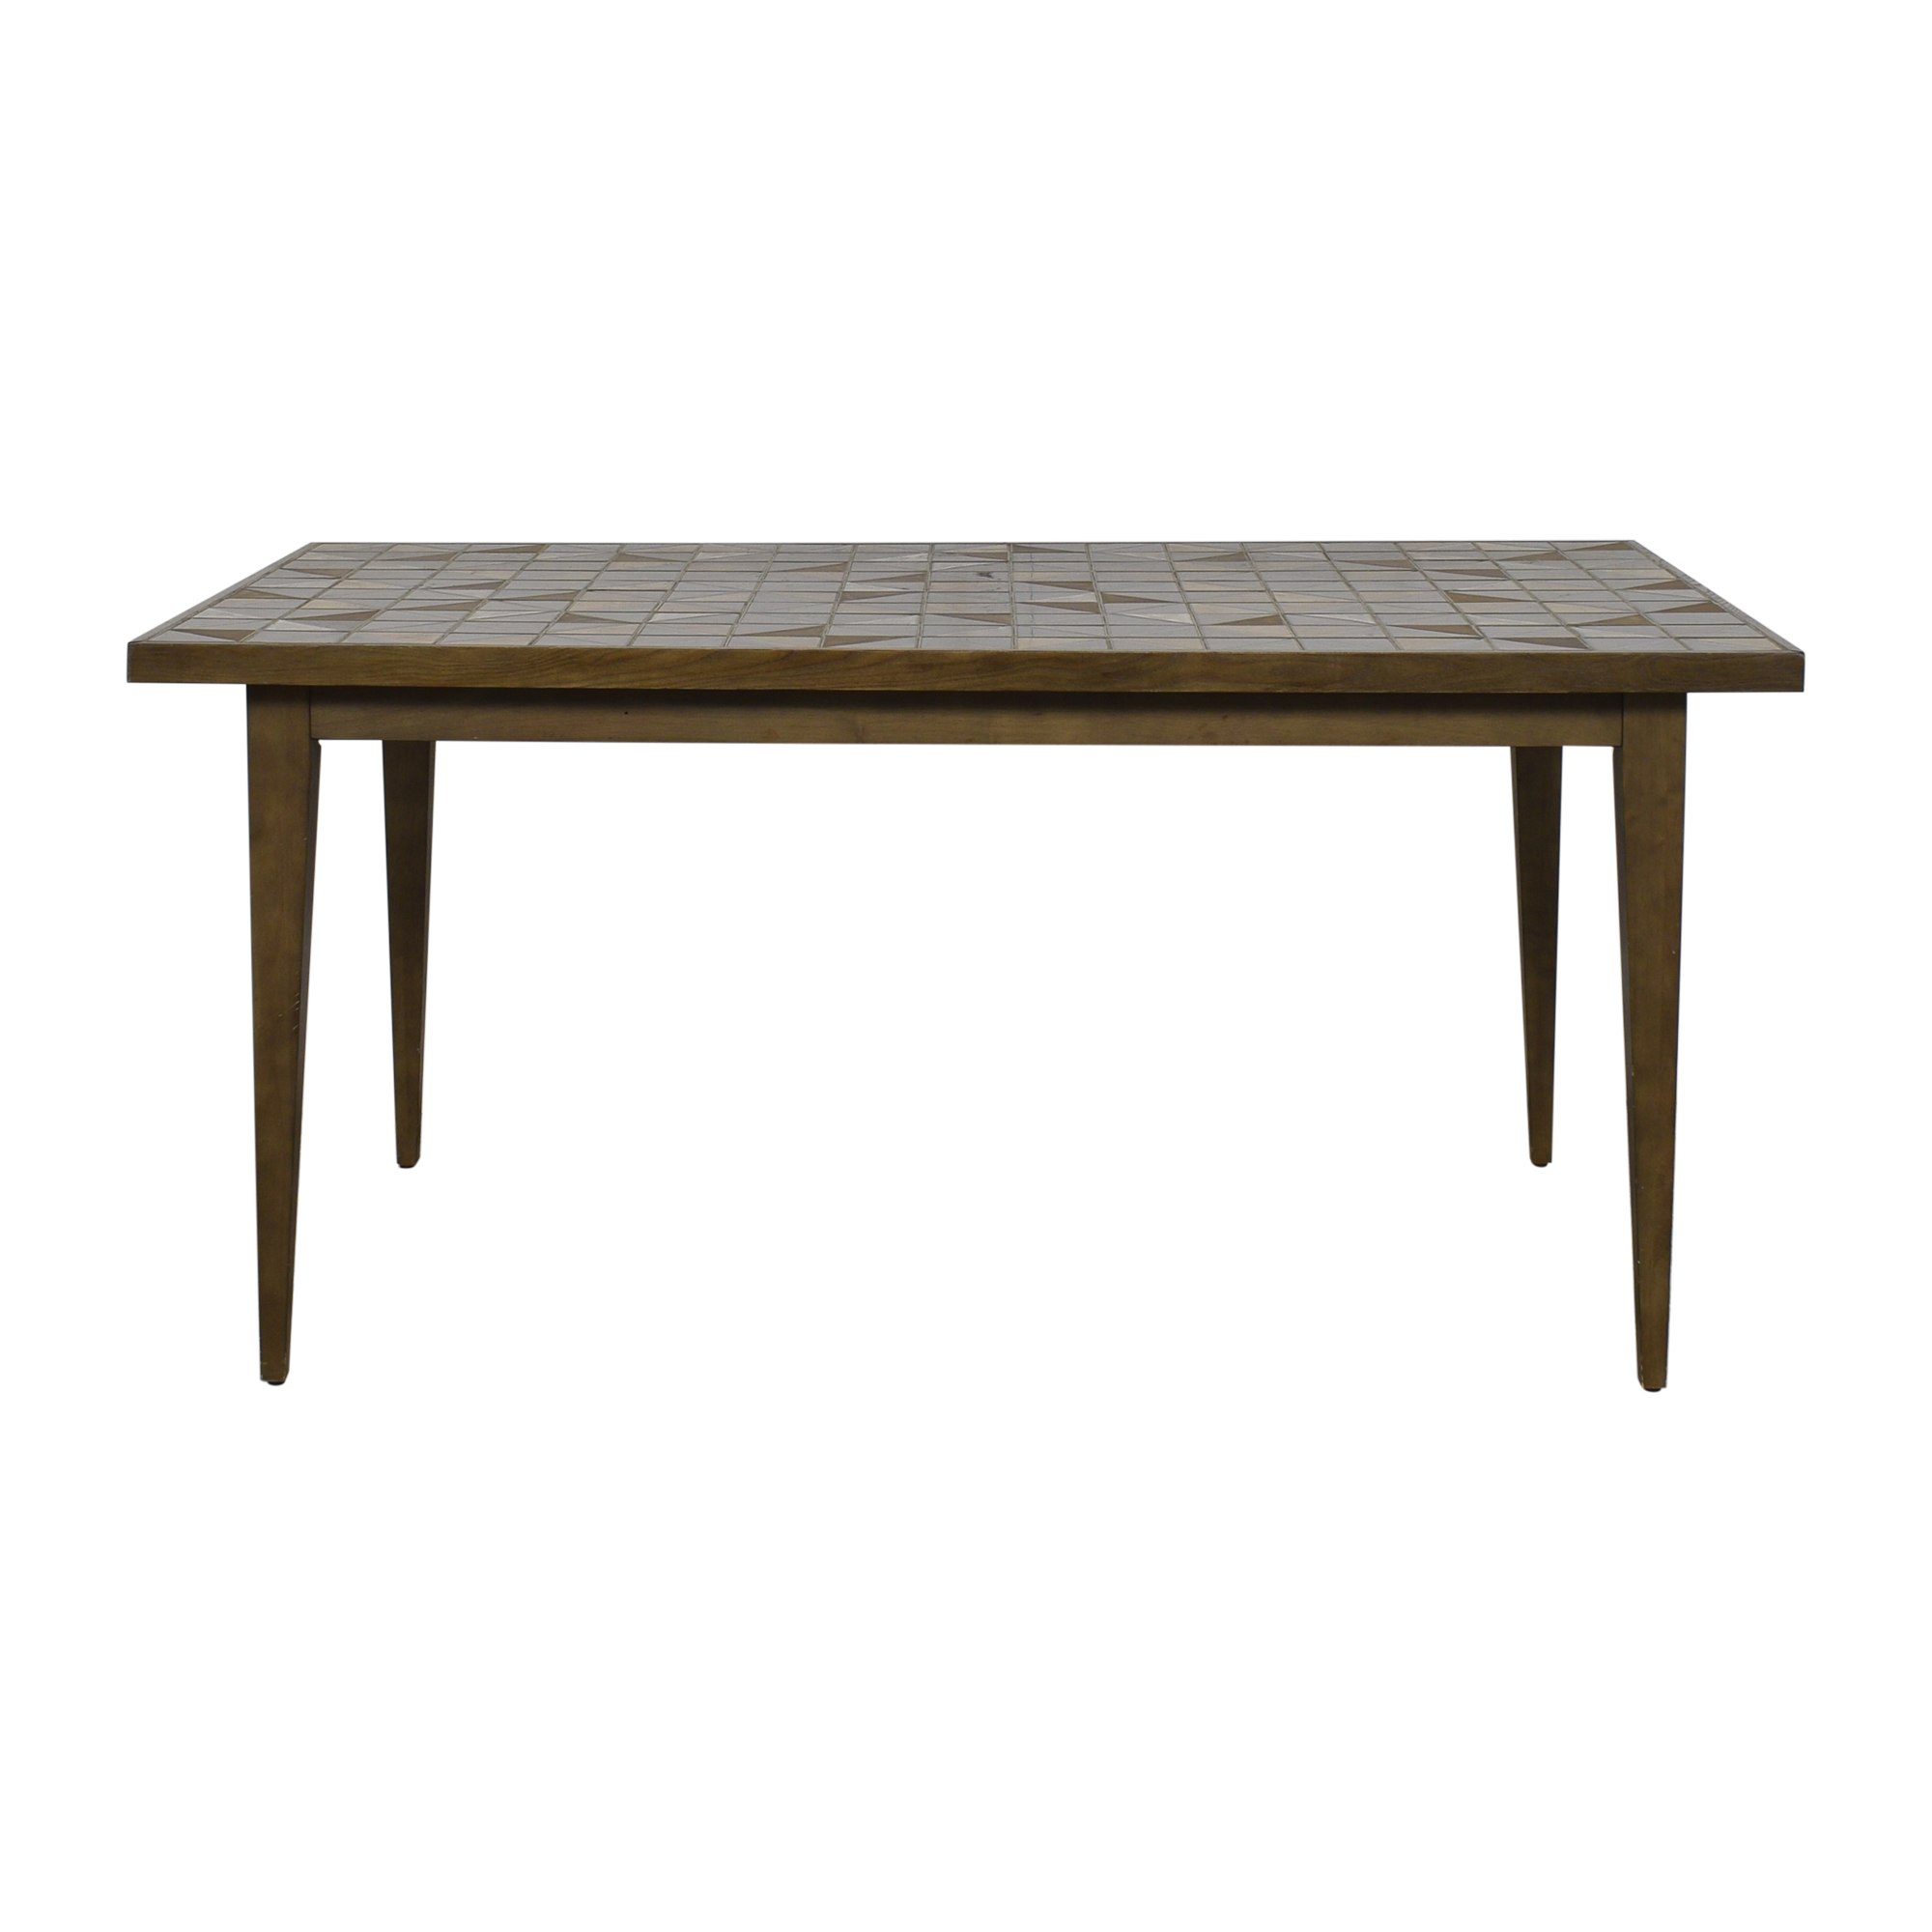 shop West Elm Lubna Chowdhary Tiled Dining Table West Elm